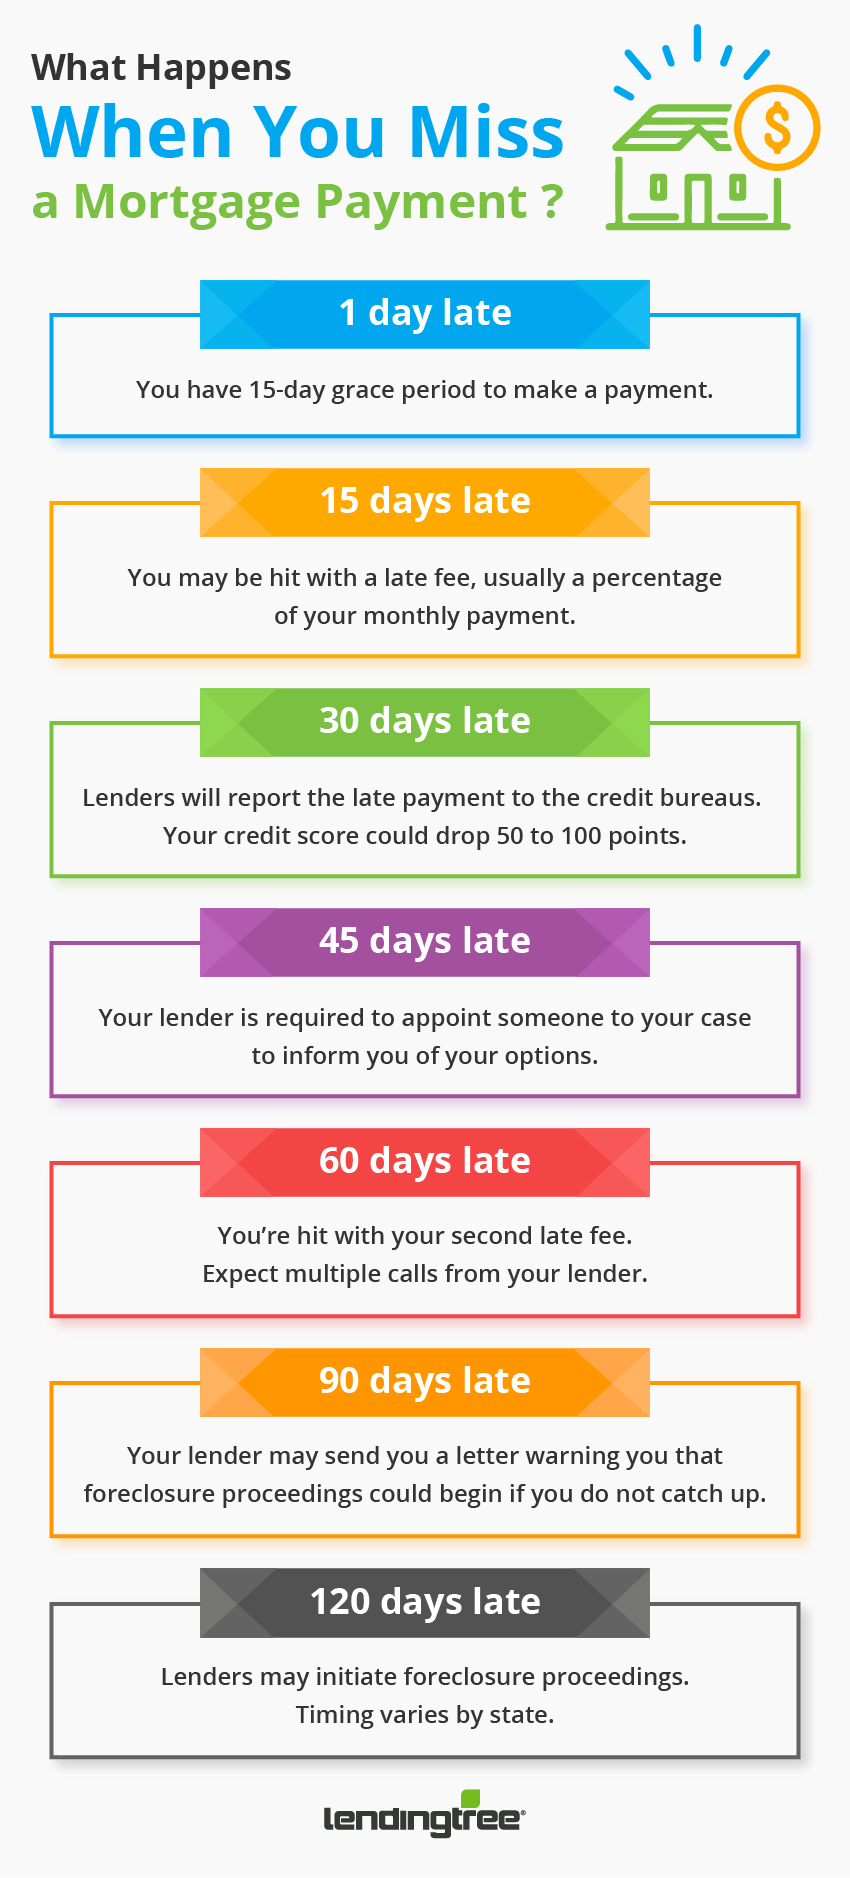 When Is Your Mortgage Payment Late  Lendingtree